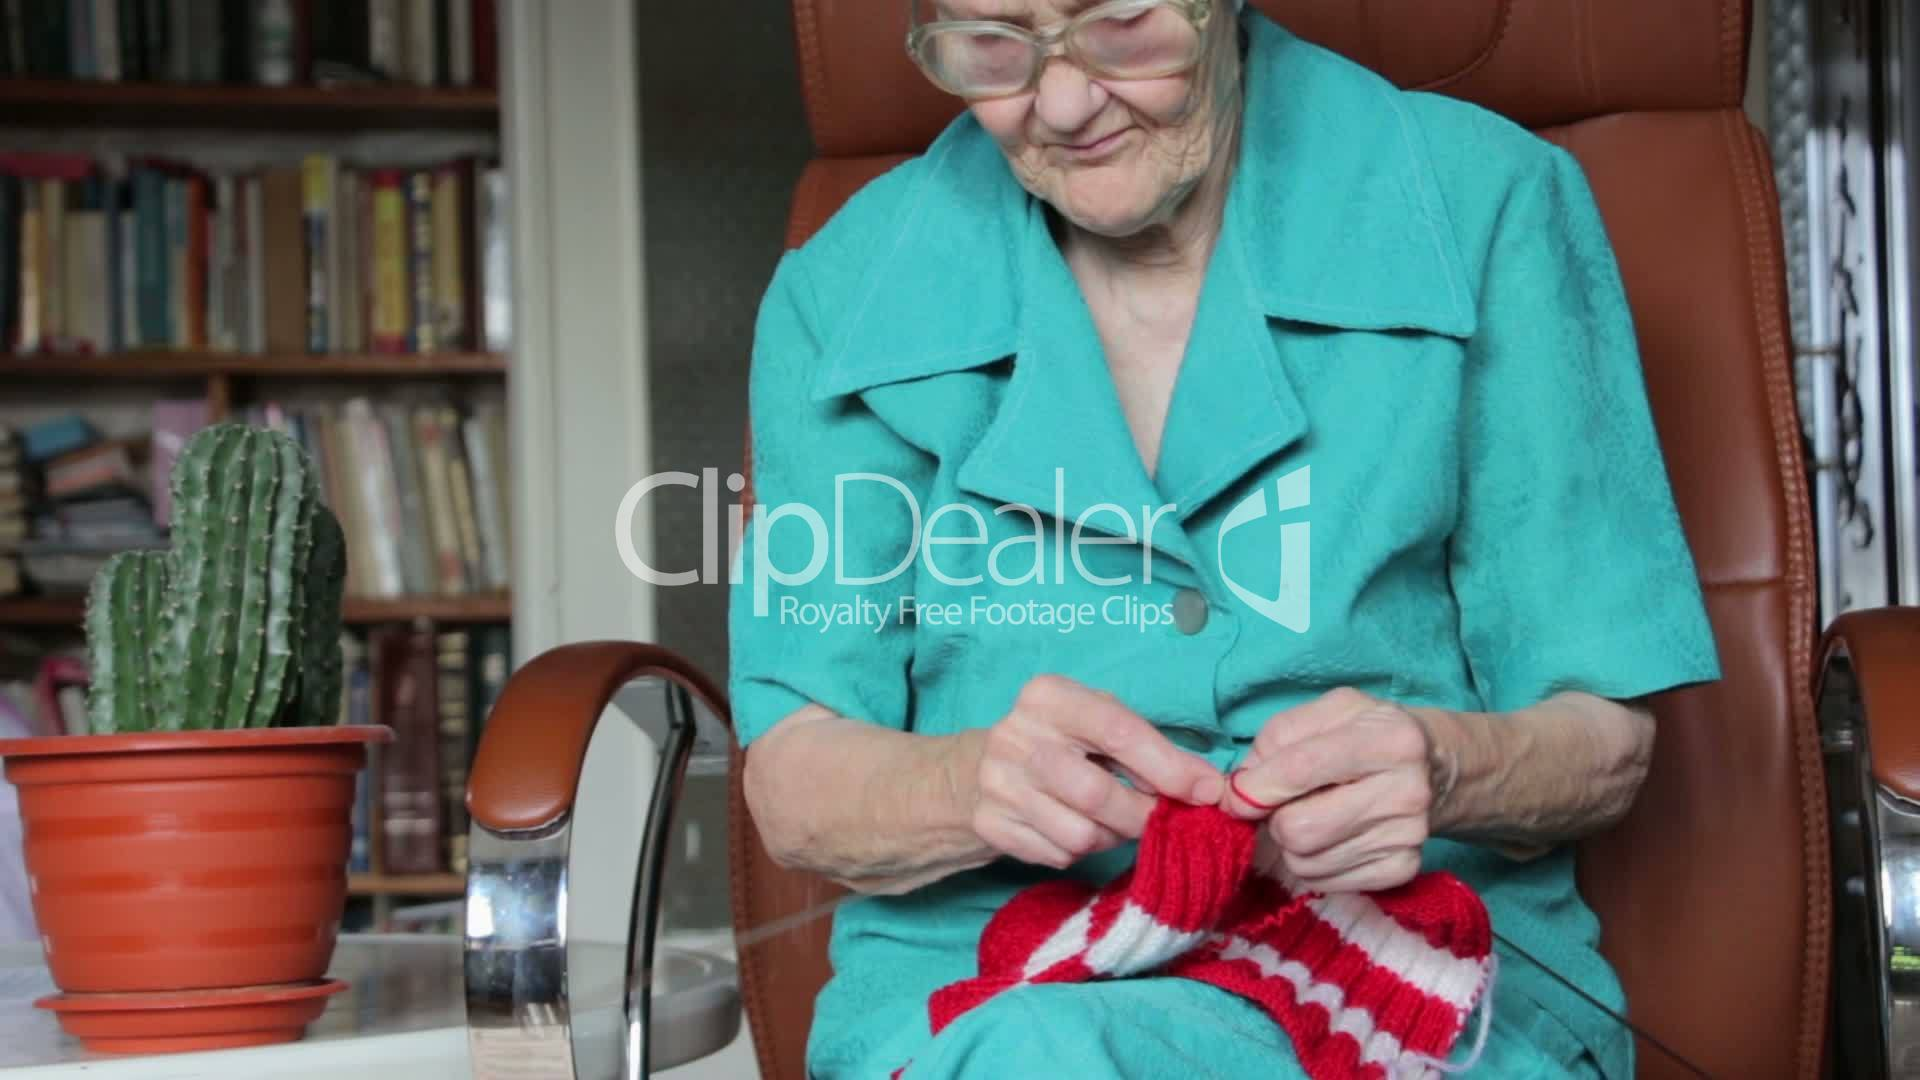 Old Lady Knitting Images : Old woman knitting royalty free video and stock footage